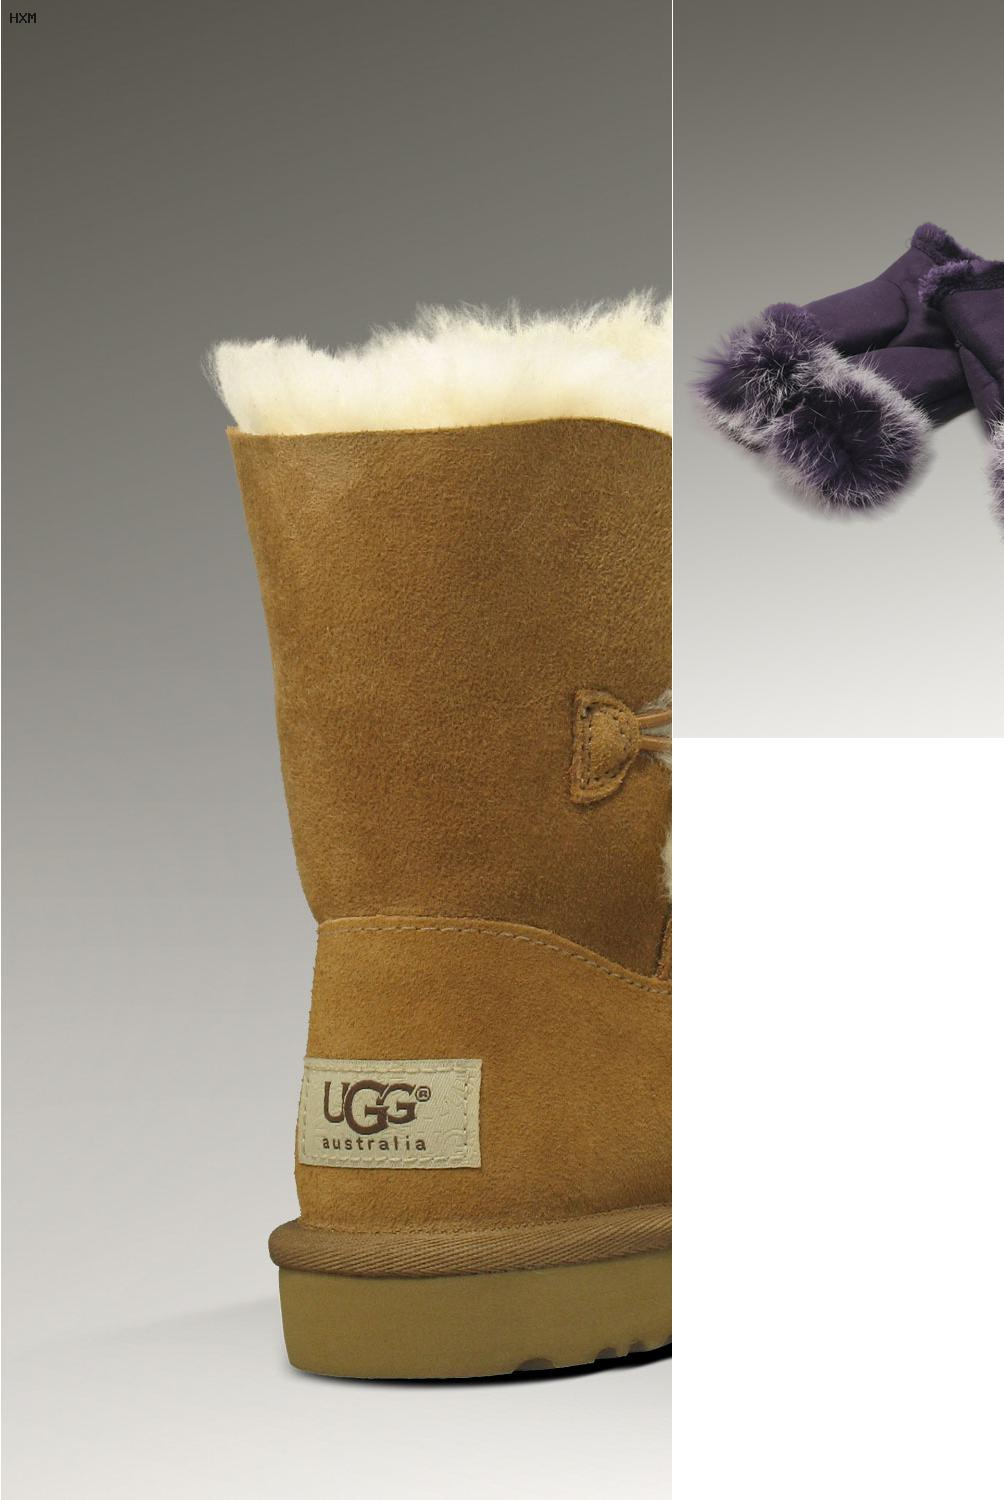 ugg australia factory outlet brunswick